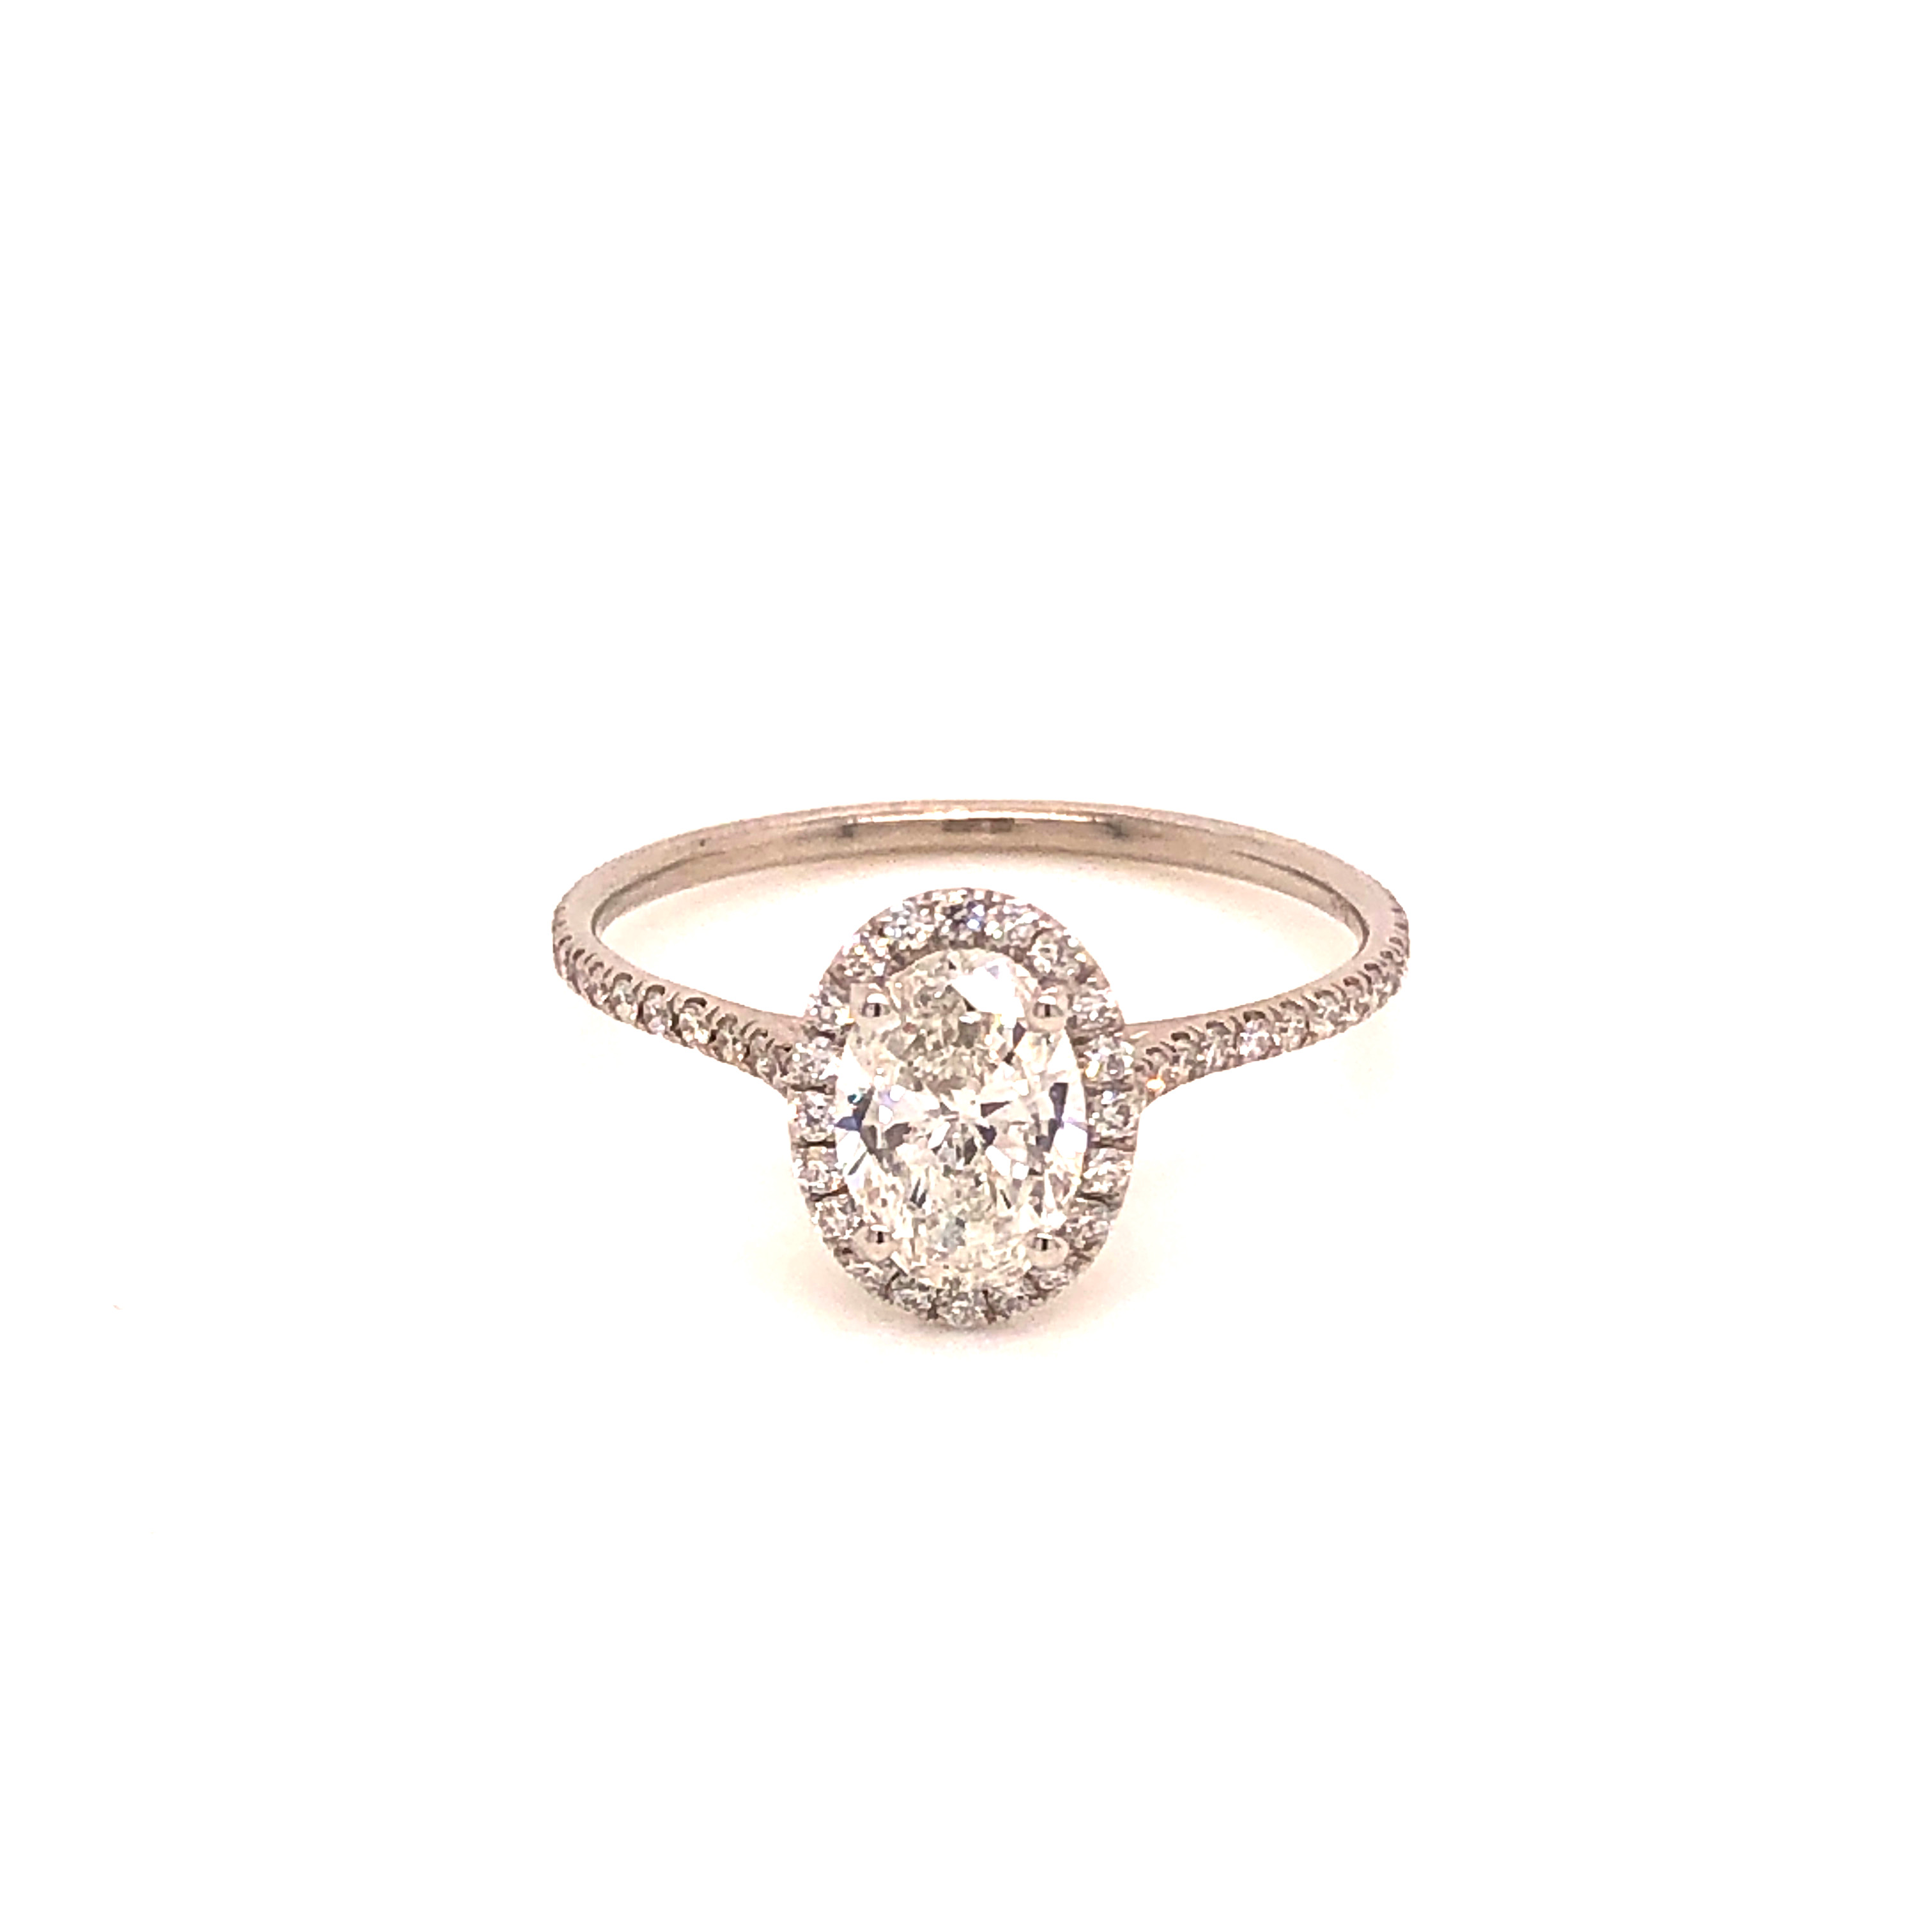 GIA certified, Oval Brilliant